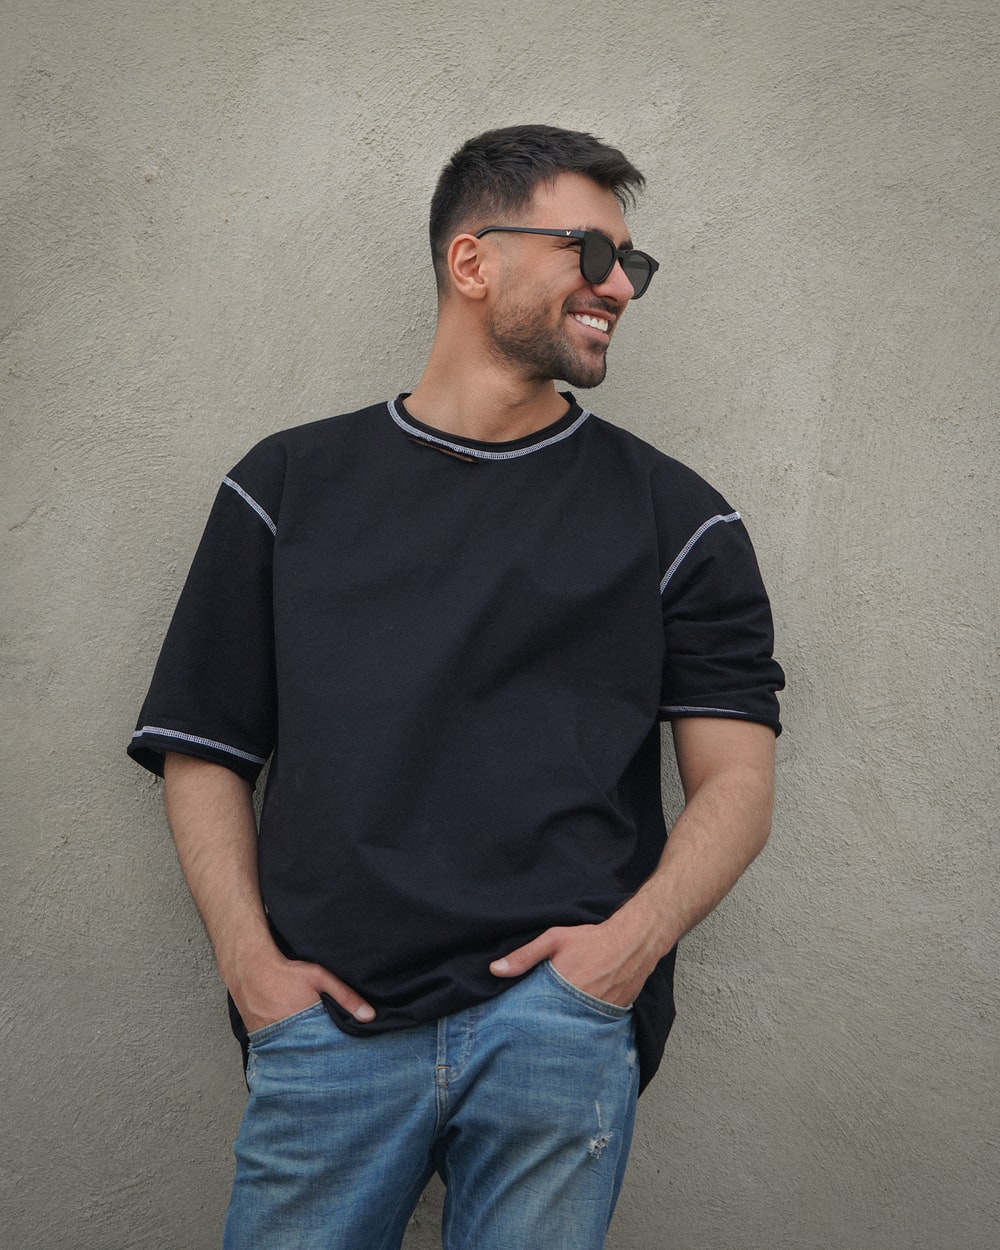 man in black crew neck t-shirt and blue denim jeans standing beside white wall